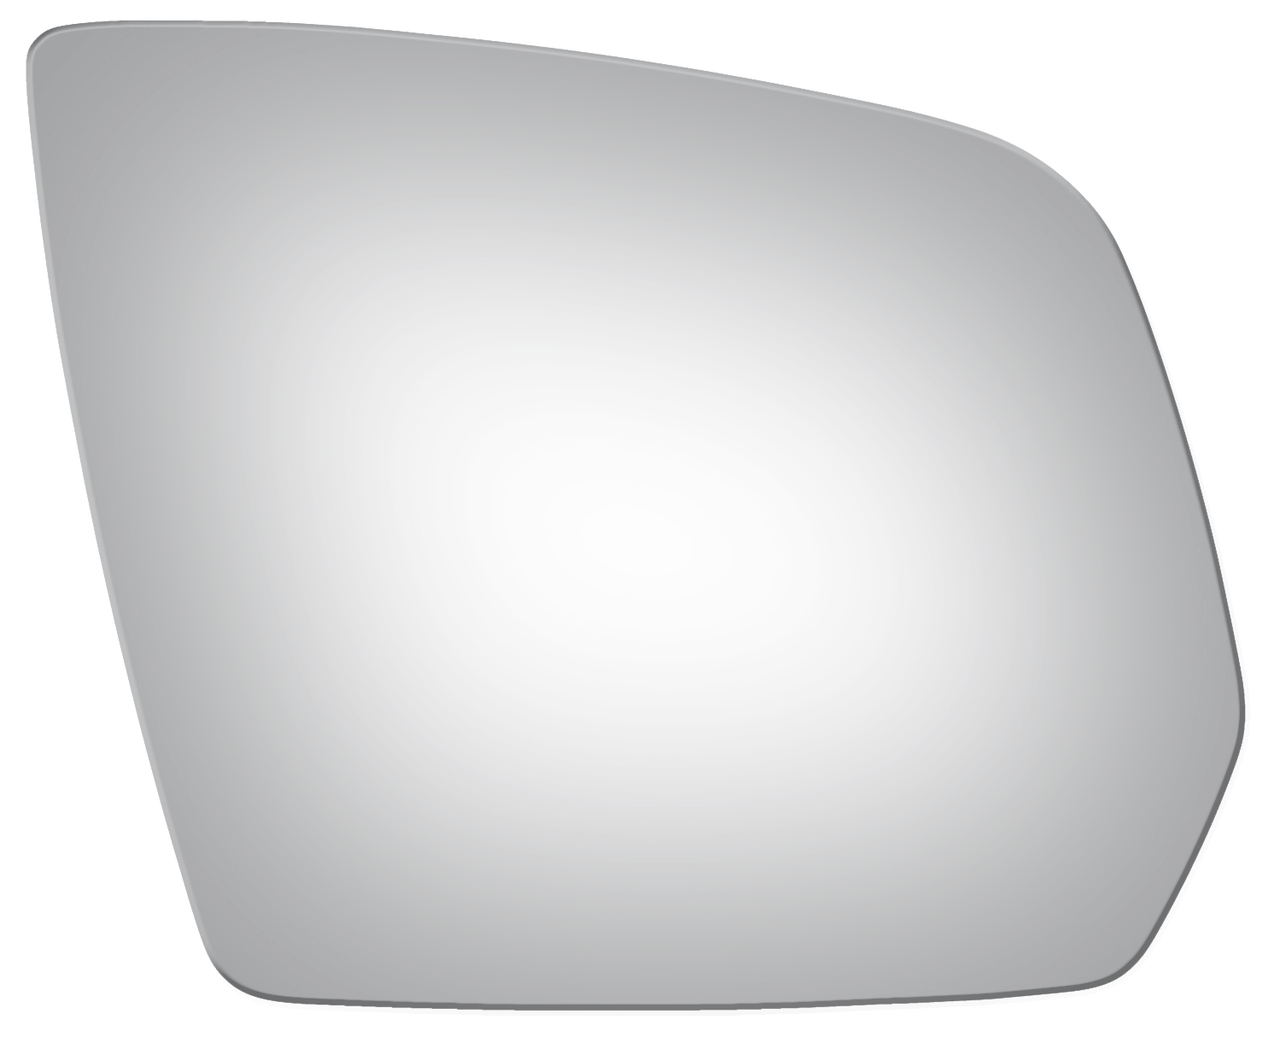 2010 MERCEDES-BENZ ML450 Passenger Side Mirror - 5360